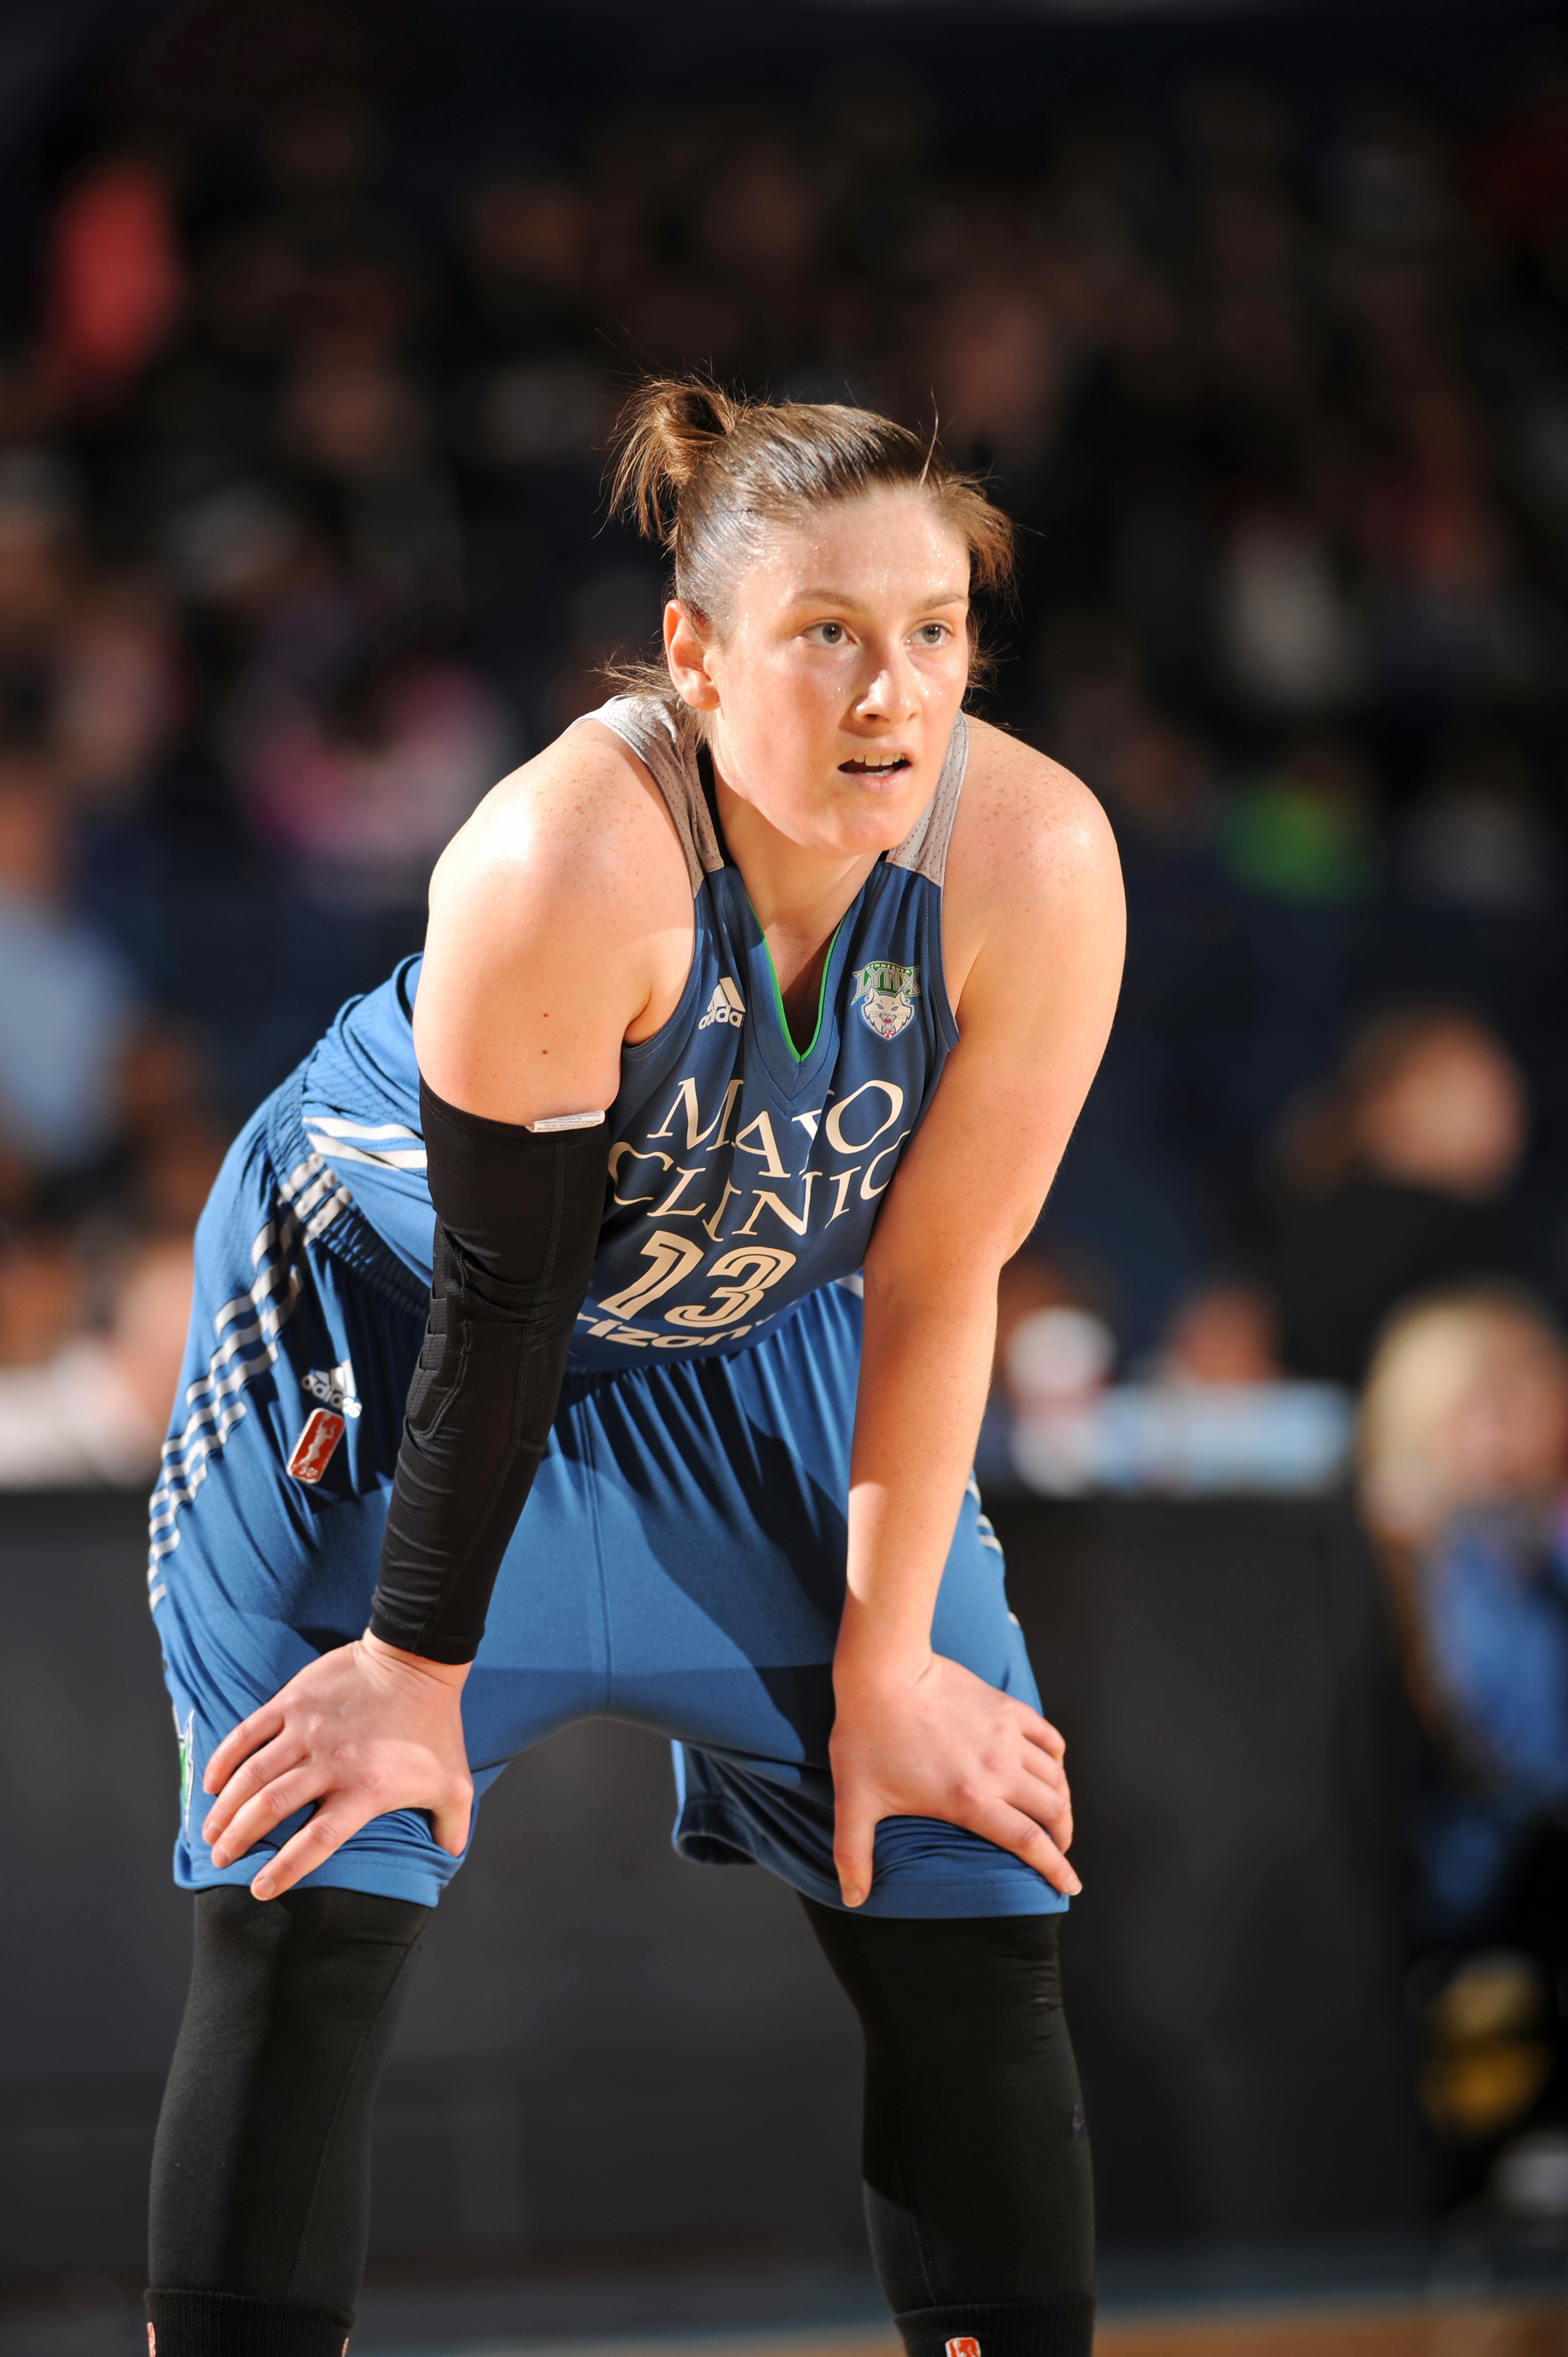 ROSEMONT, IL- MAY 18: Lindsay Whalen #13 of the Minnesota Lynx looks on during the game against the Chicago Sky on May 18, 2016 at the Allstate Arena in Rosemont, Illinois. NOTE TO USER: User expressly acknowledges and agrees that, by downloading and/or using this photograph, user is consenting to the terms and conditions of the Getty Images License Agreement. Mandatory Copyright Notice: Copyright 2016 NBAE (Photo by Randy Belice/NBAE via Getty Images)